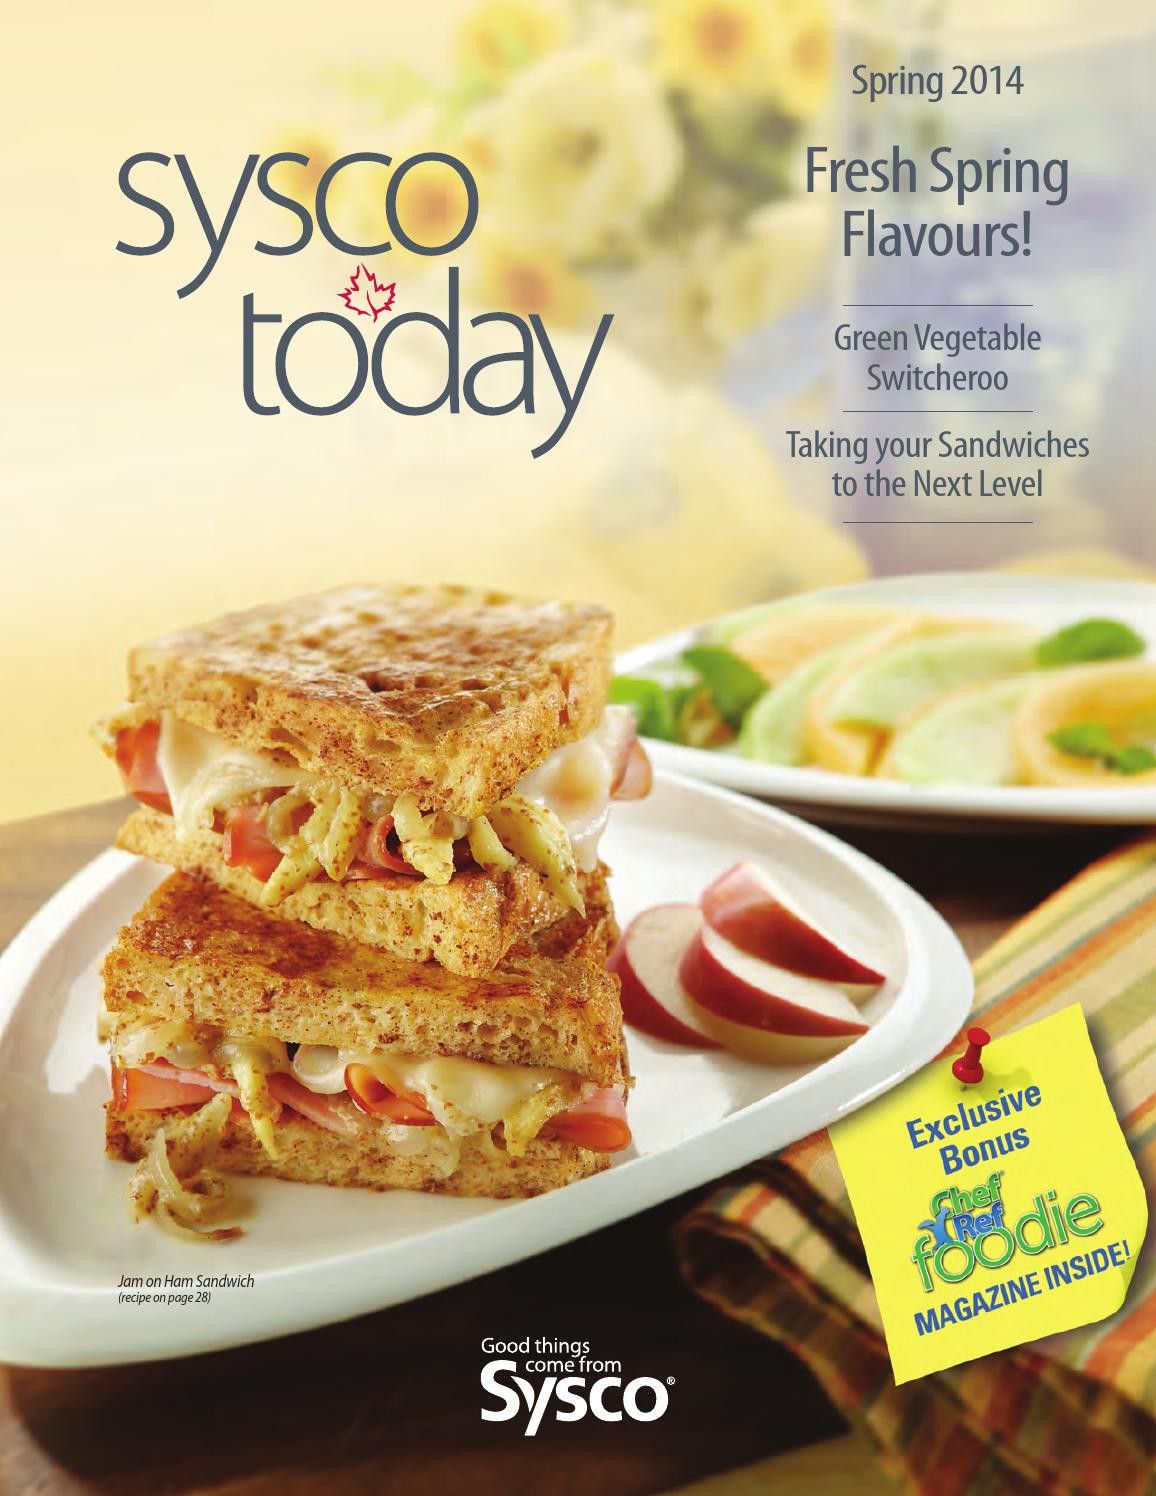 sysco-today-national-03-20-14-final by Penny Shantz